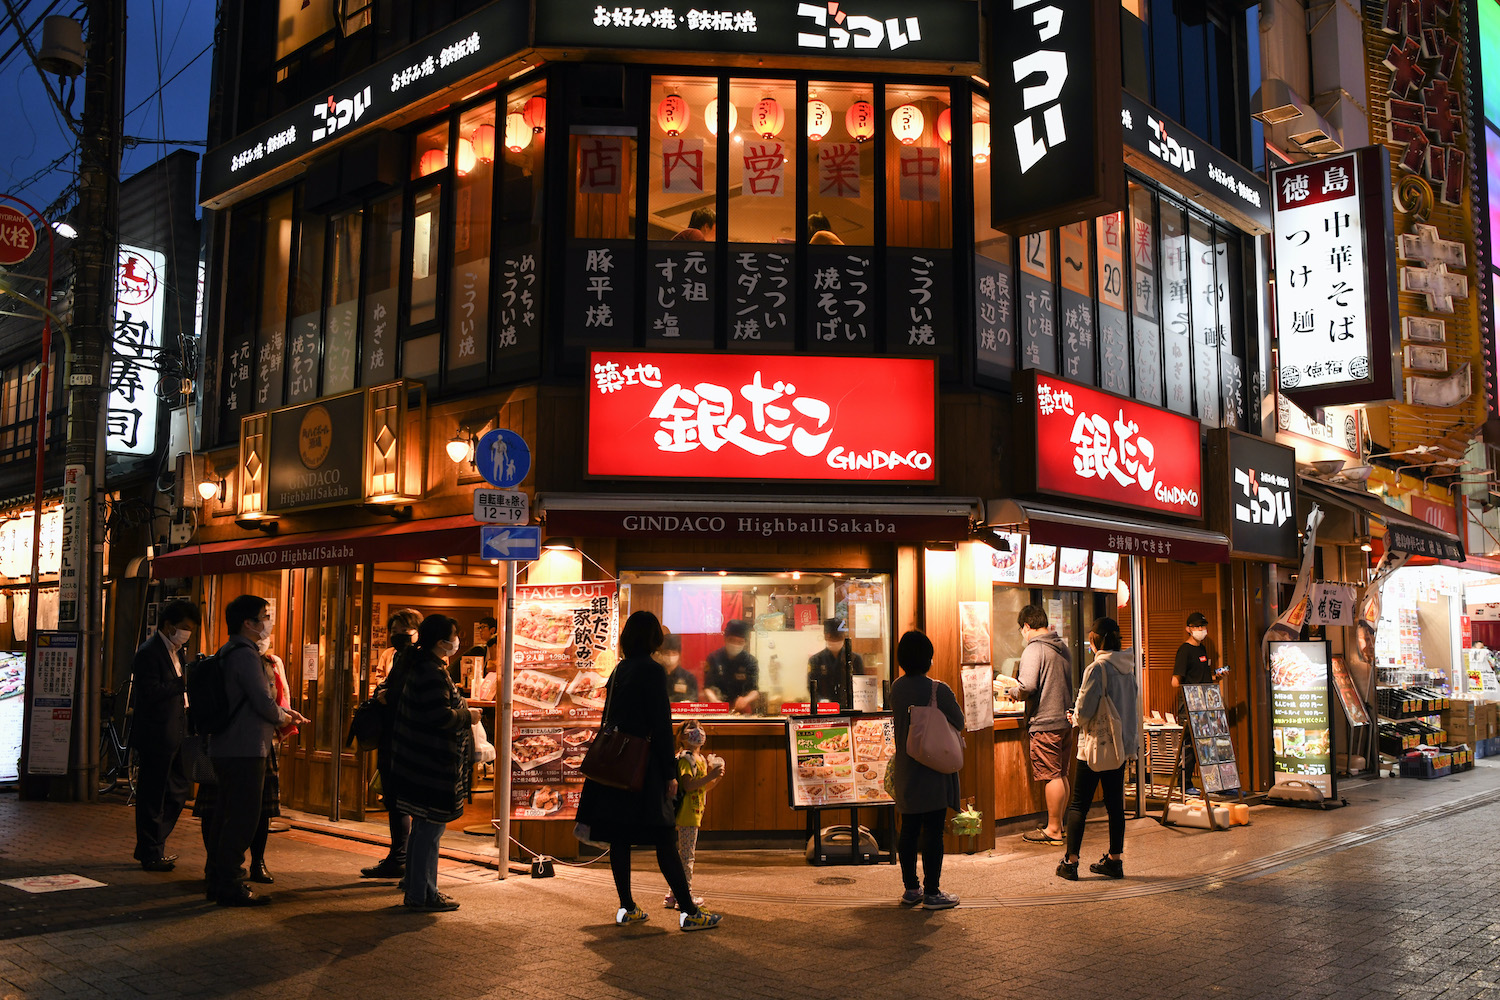 Customers keep their distance while waiting outside a restaurant to order food in the Kamata district of Tokyo on Friday evening. (Bloomberg Photo)